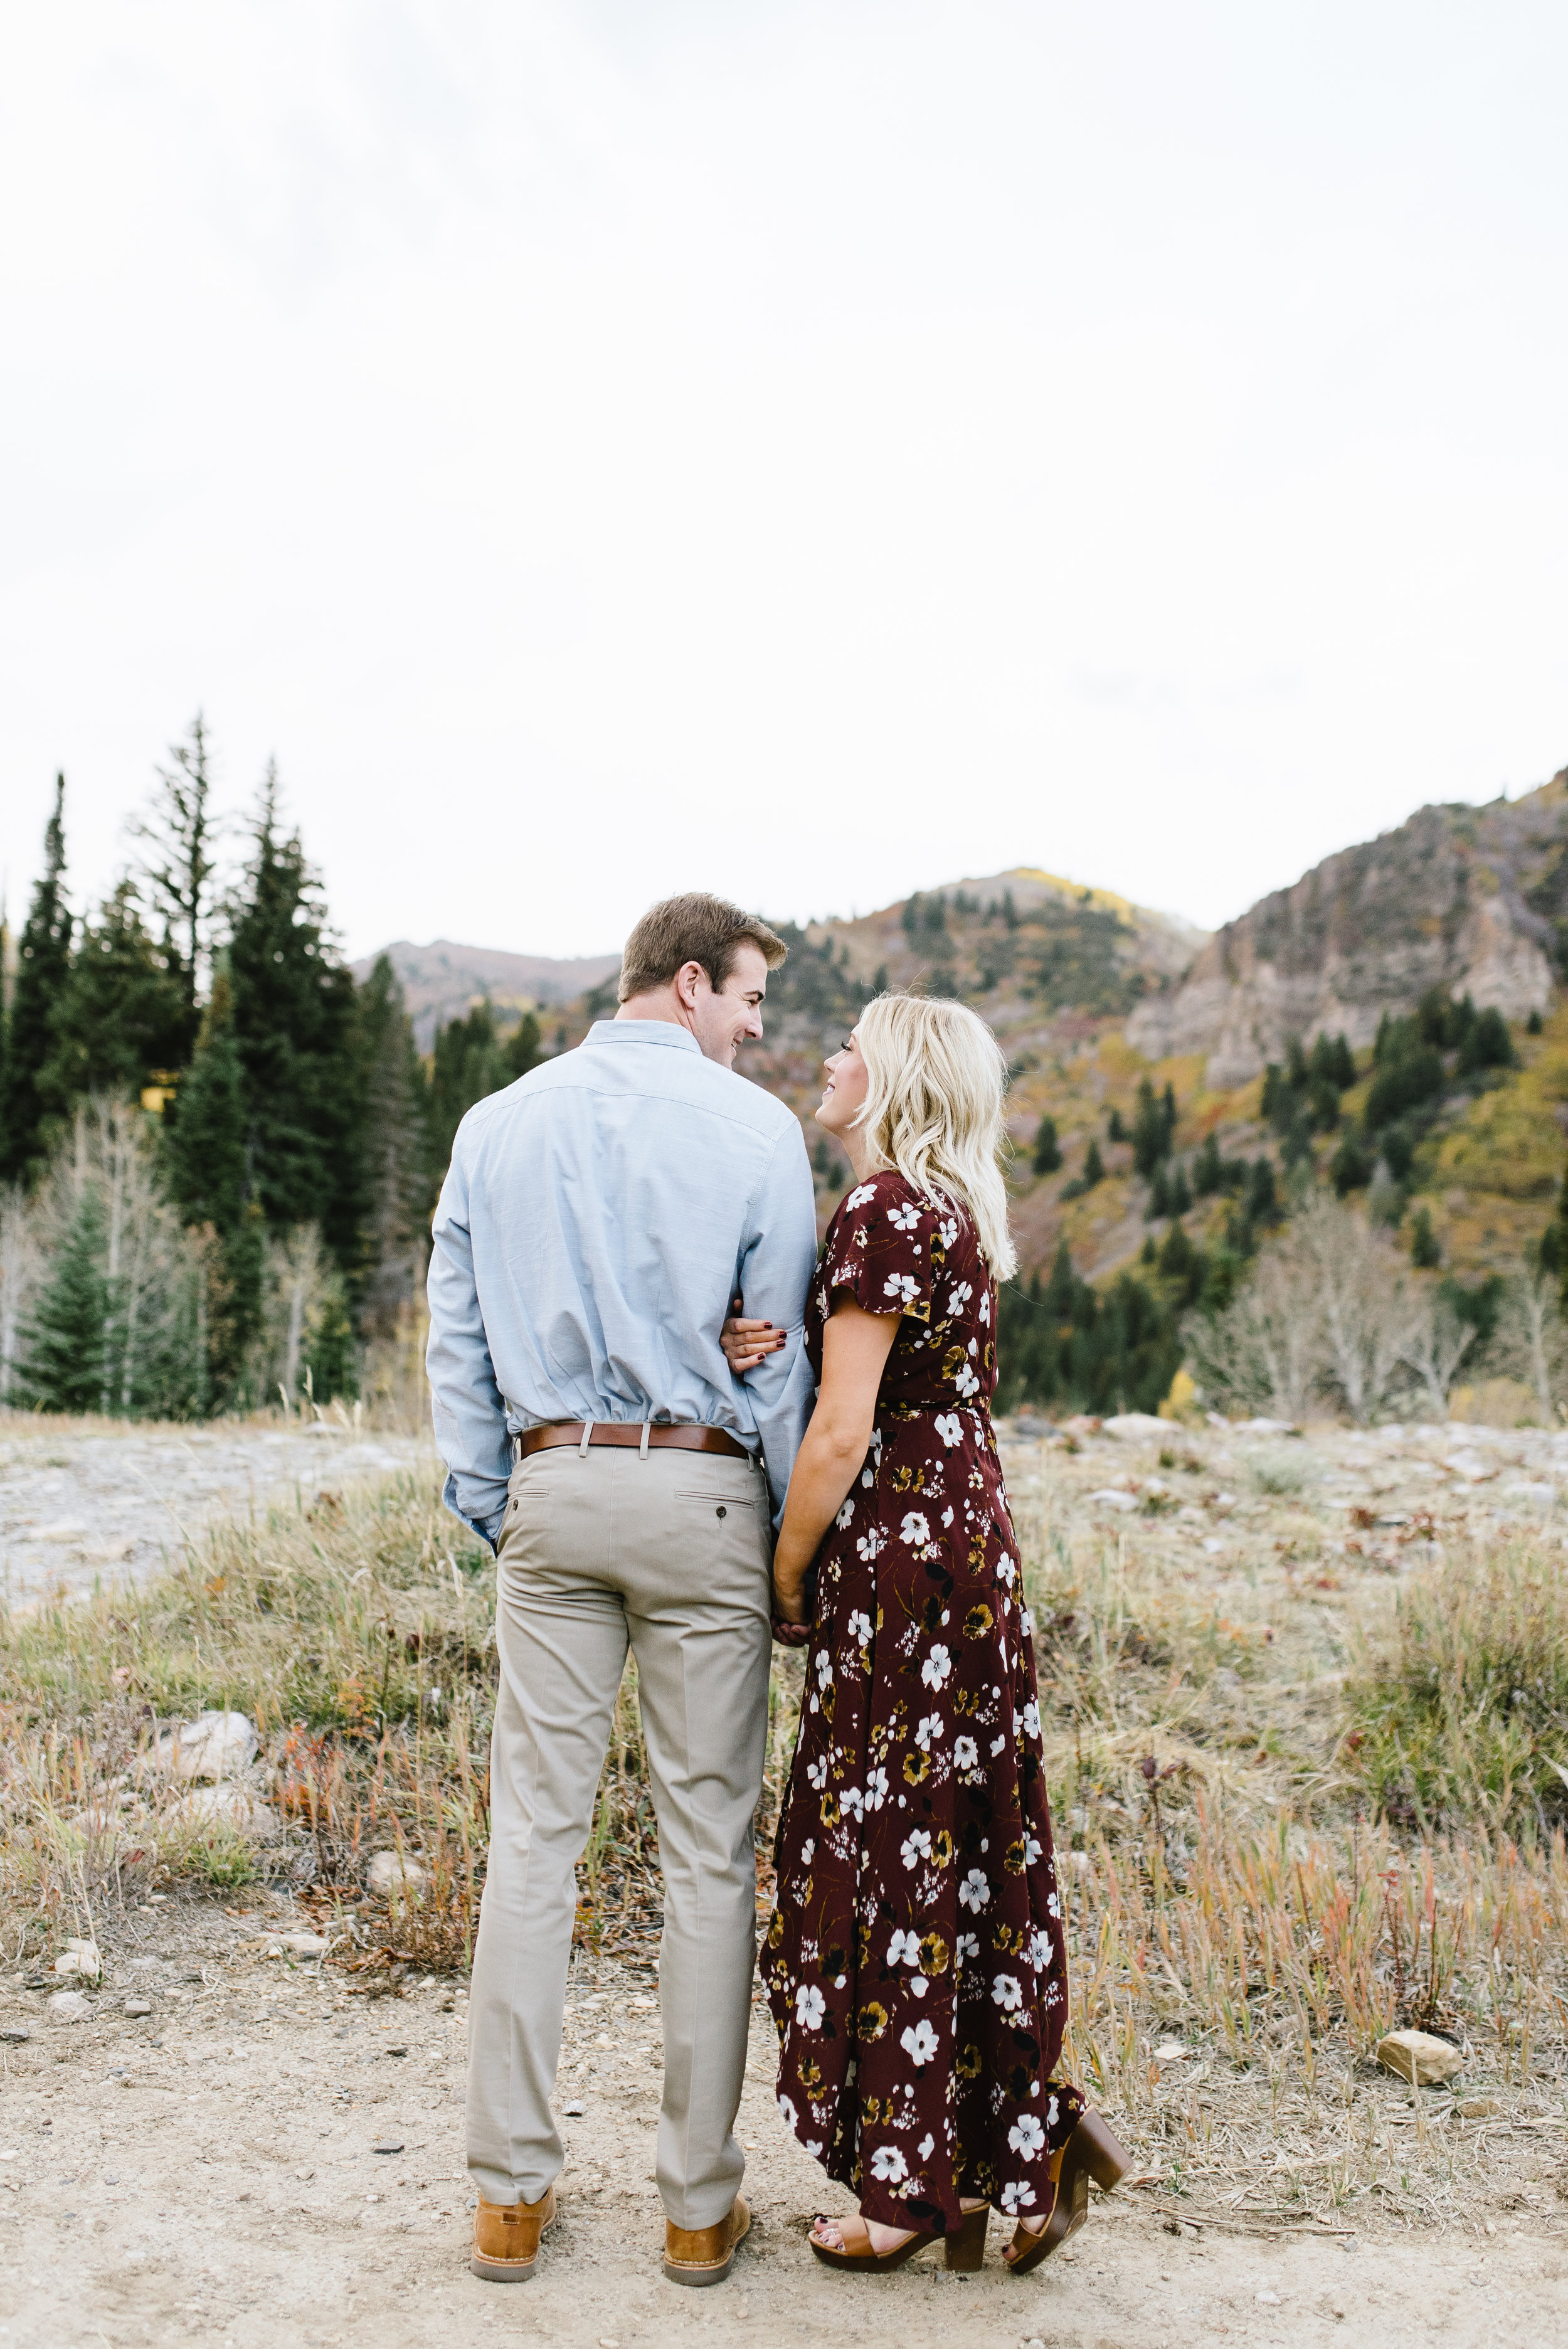 Taylor+Joe Engagements-133.jpg